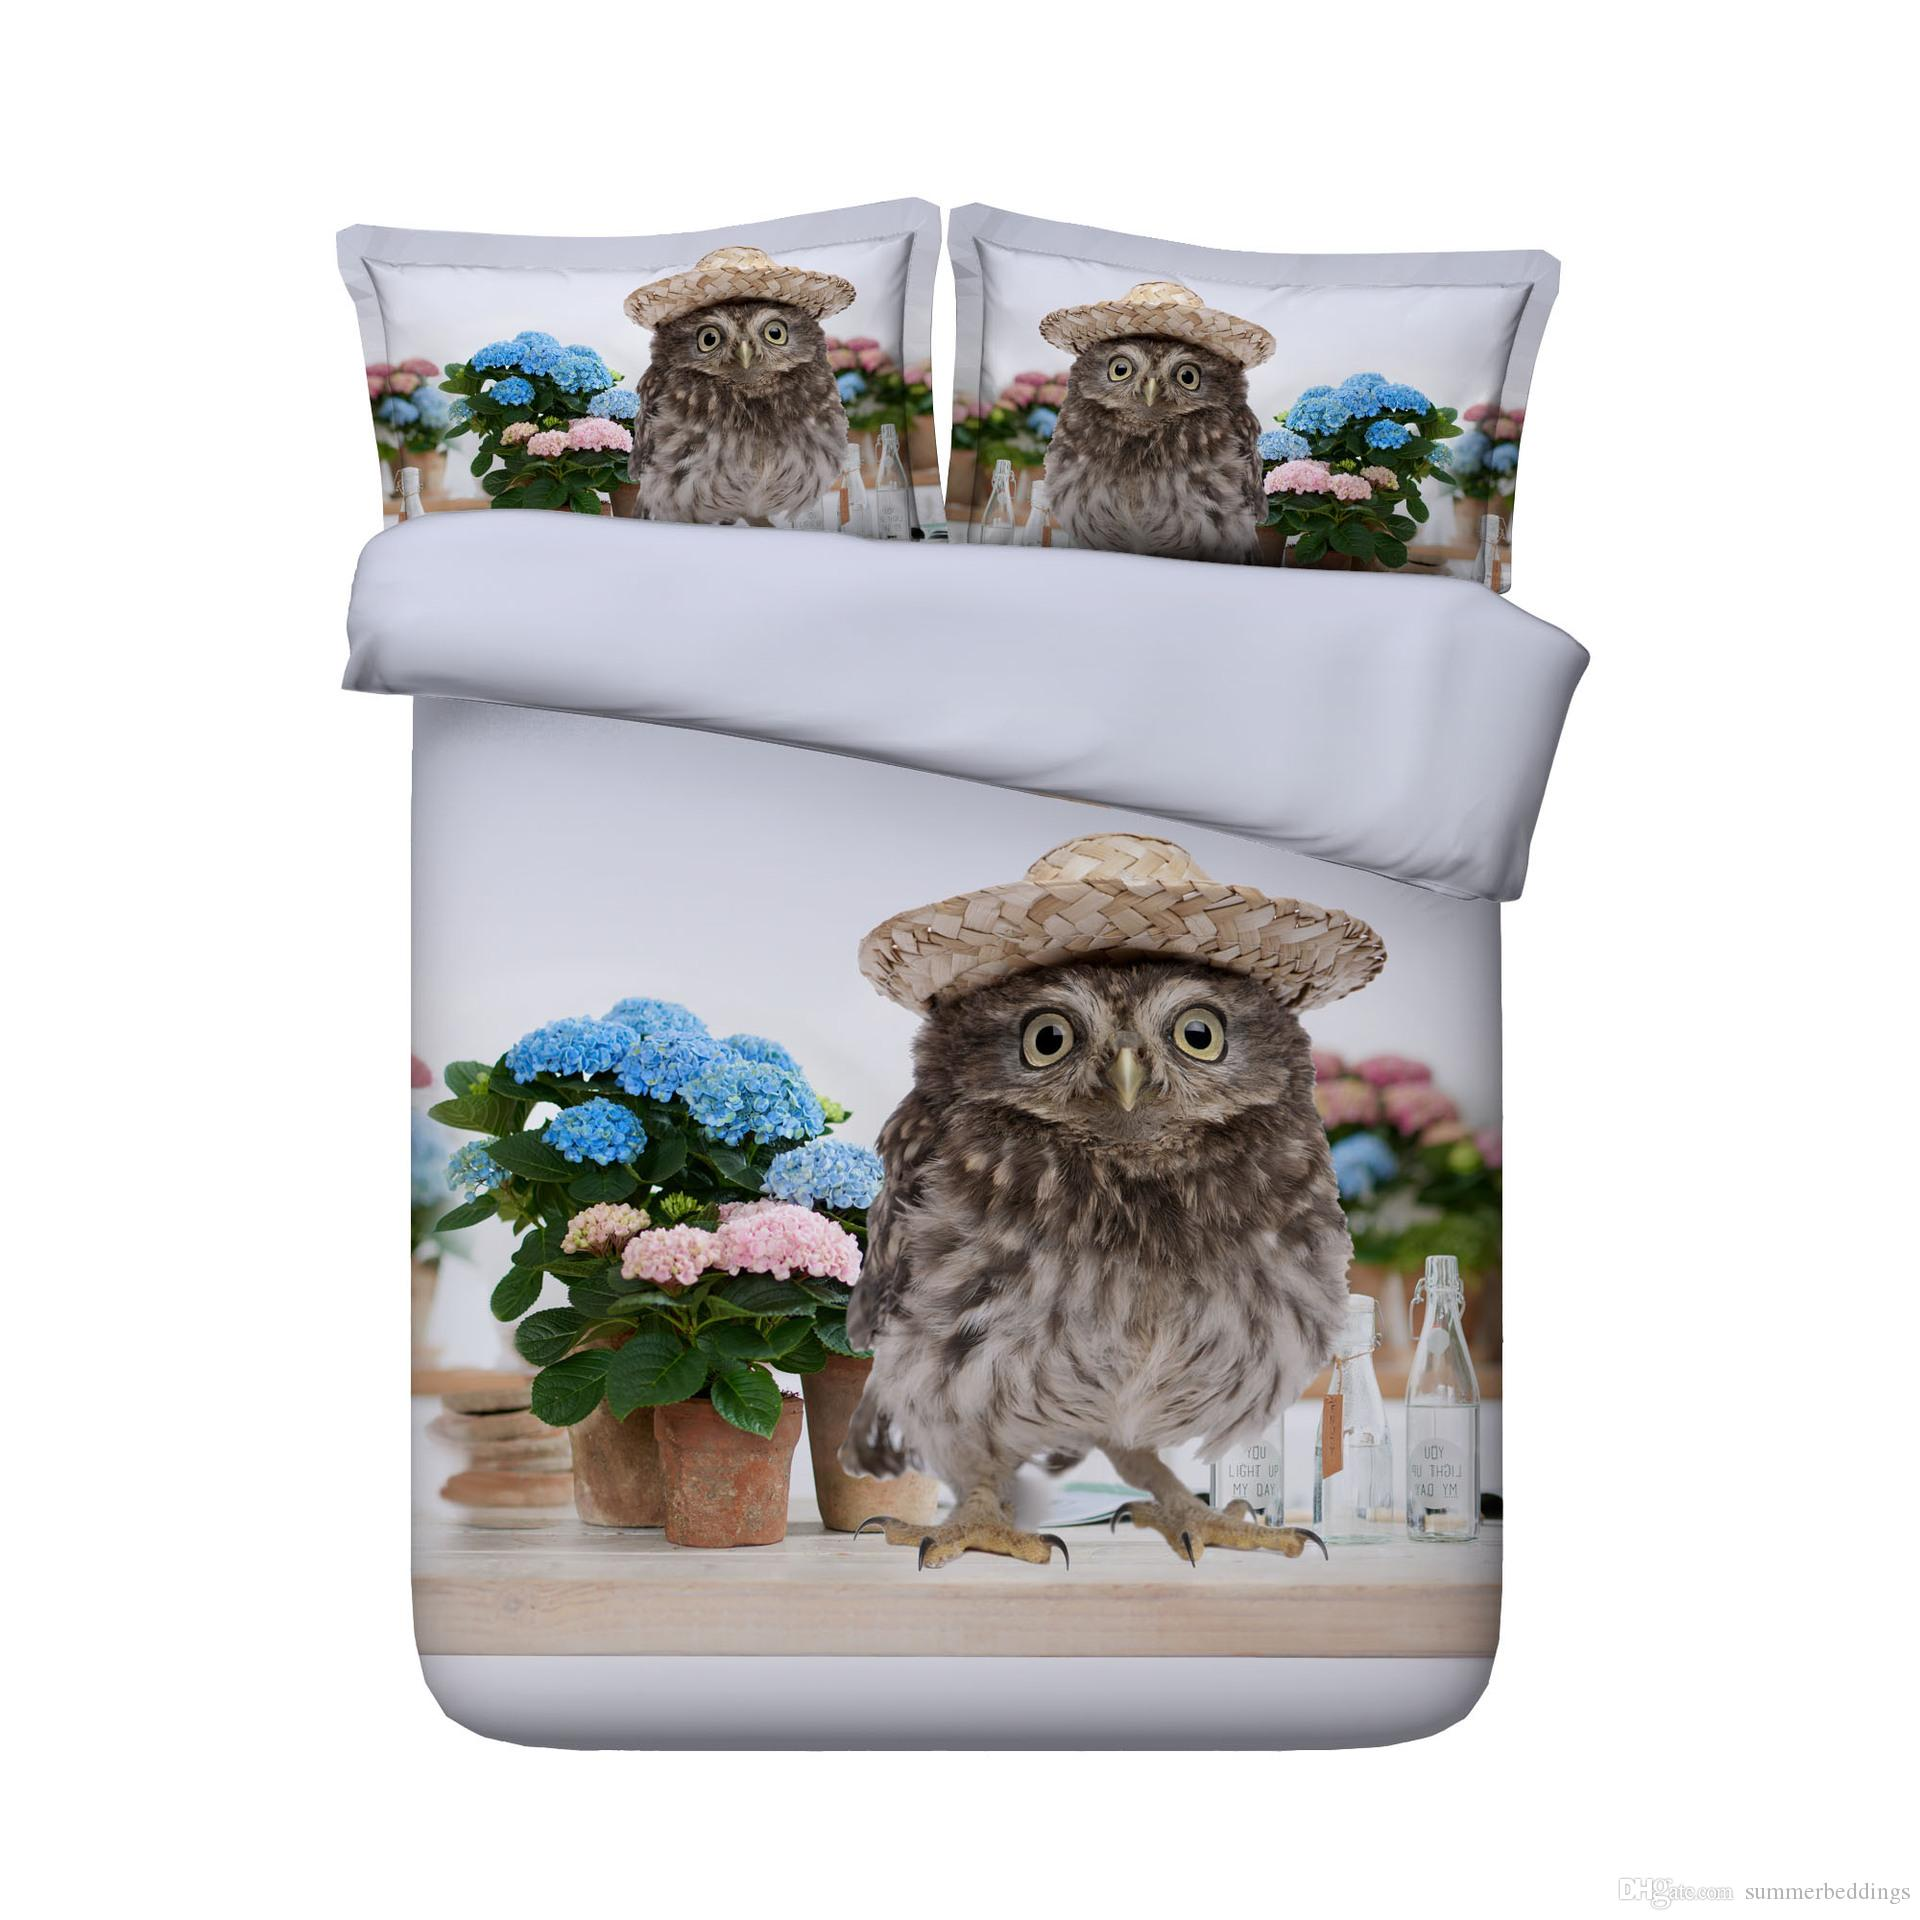 3D Owl Duvet Cover Flamingo Bedding Sets Bedspreads Holiday Quilt Covers Bed Linen Pillow Covers California King ocean beach theme horse